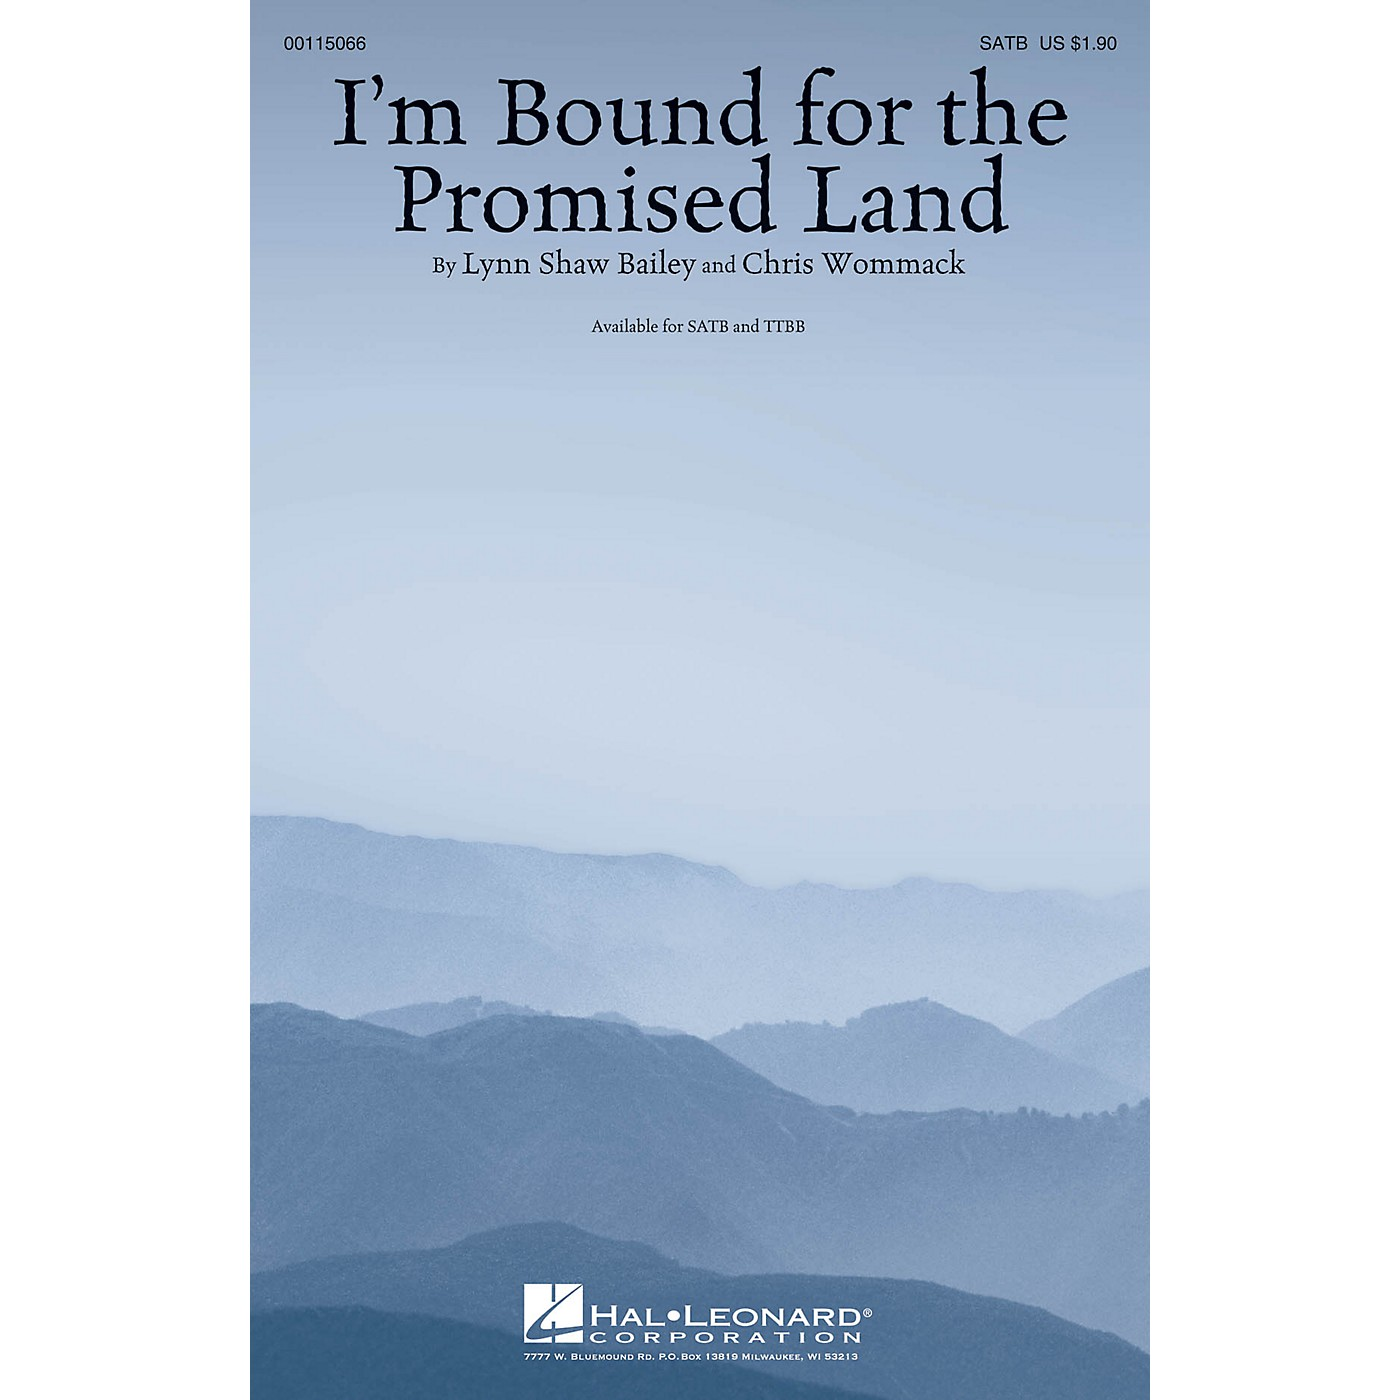 Hal Leonard I'm Bound for the Promised Land SATB composed by Lynn Shaw Bailey thumbnail